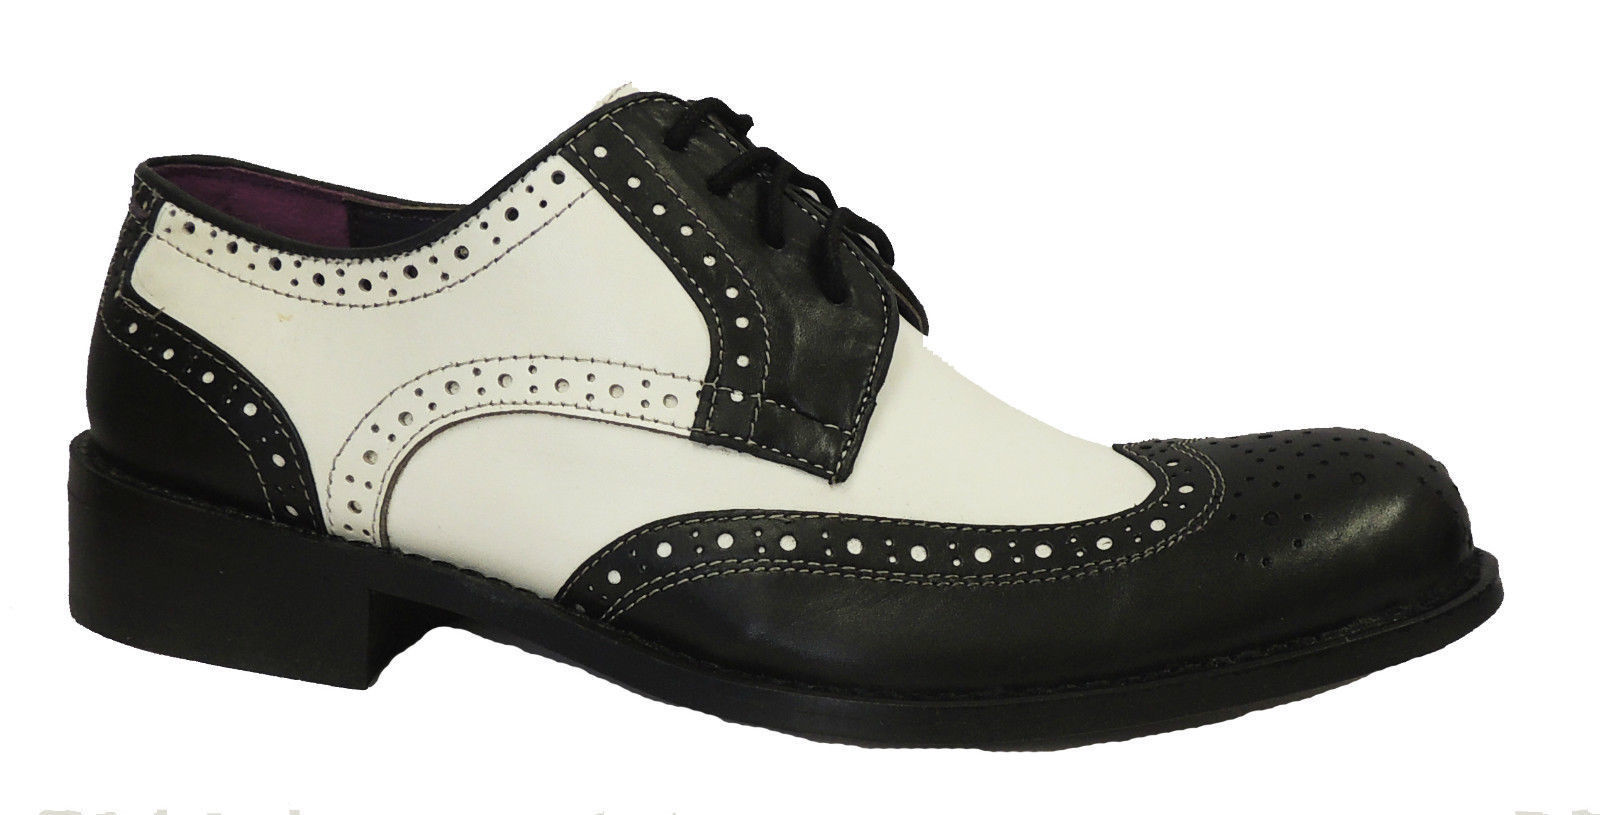 new 1920 s 30 39 s 40 39 s mens black white leather gangster jazz gatsby brogues shoes ebay. Black Bedroom Furniture Sets. Home Design Ideas